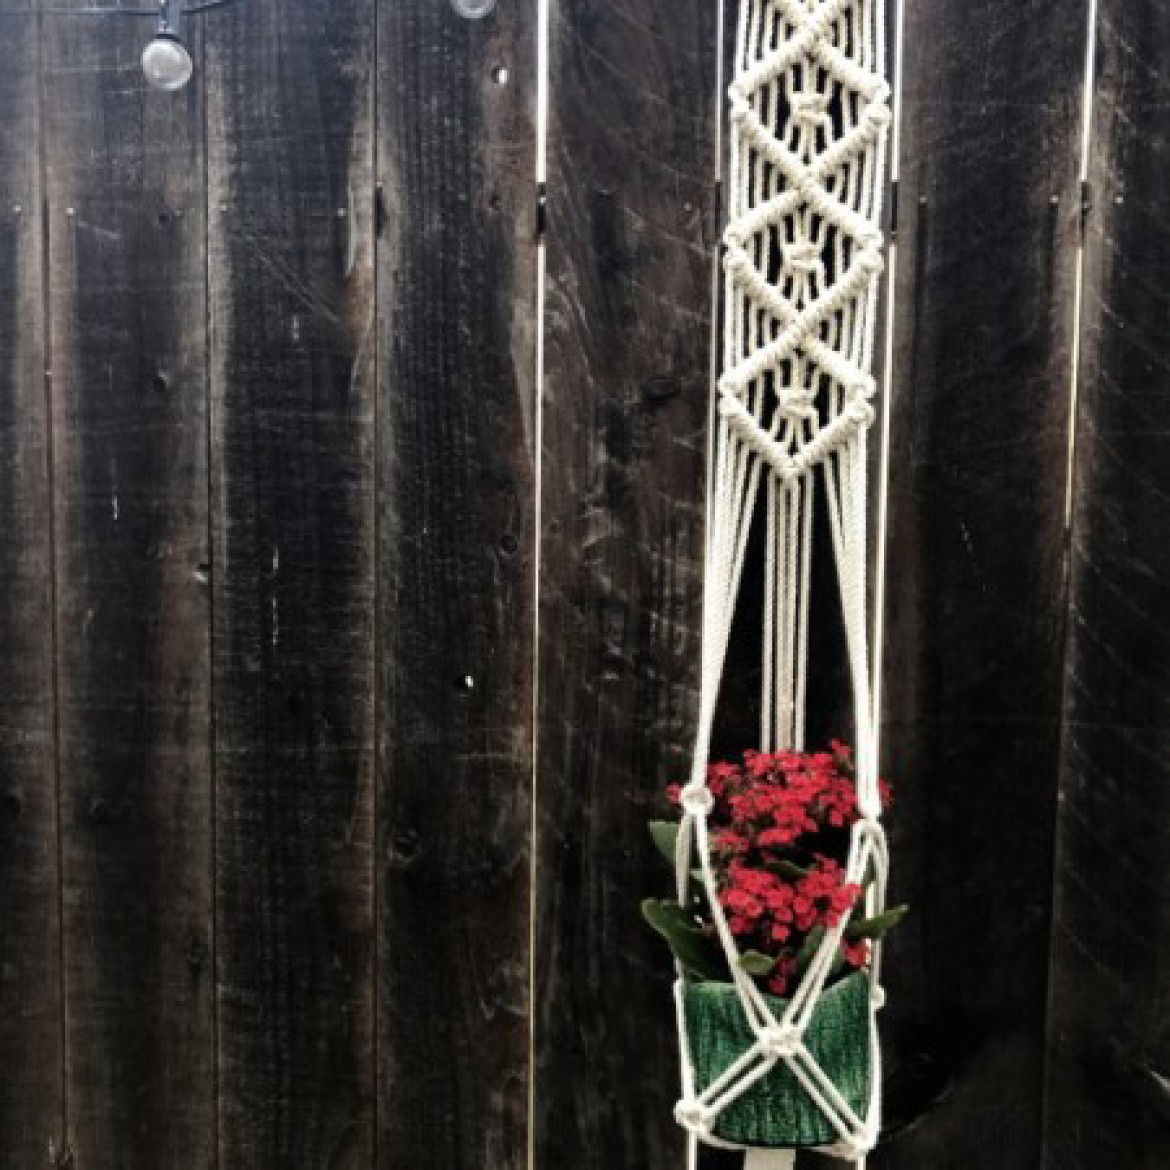 Macrame Hanging Planter 2.0 Workshop